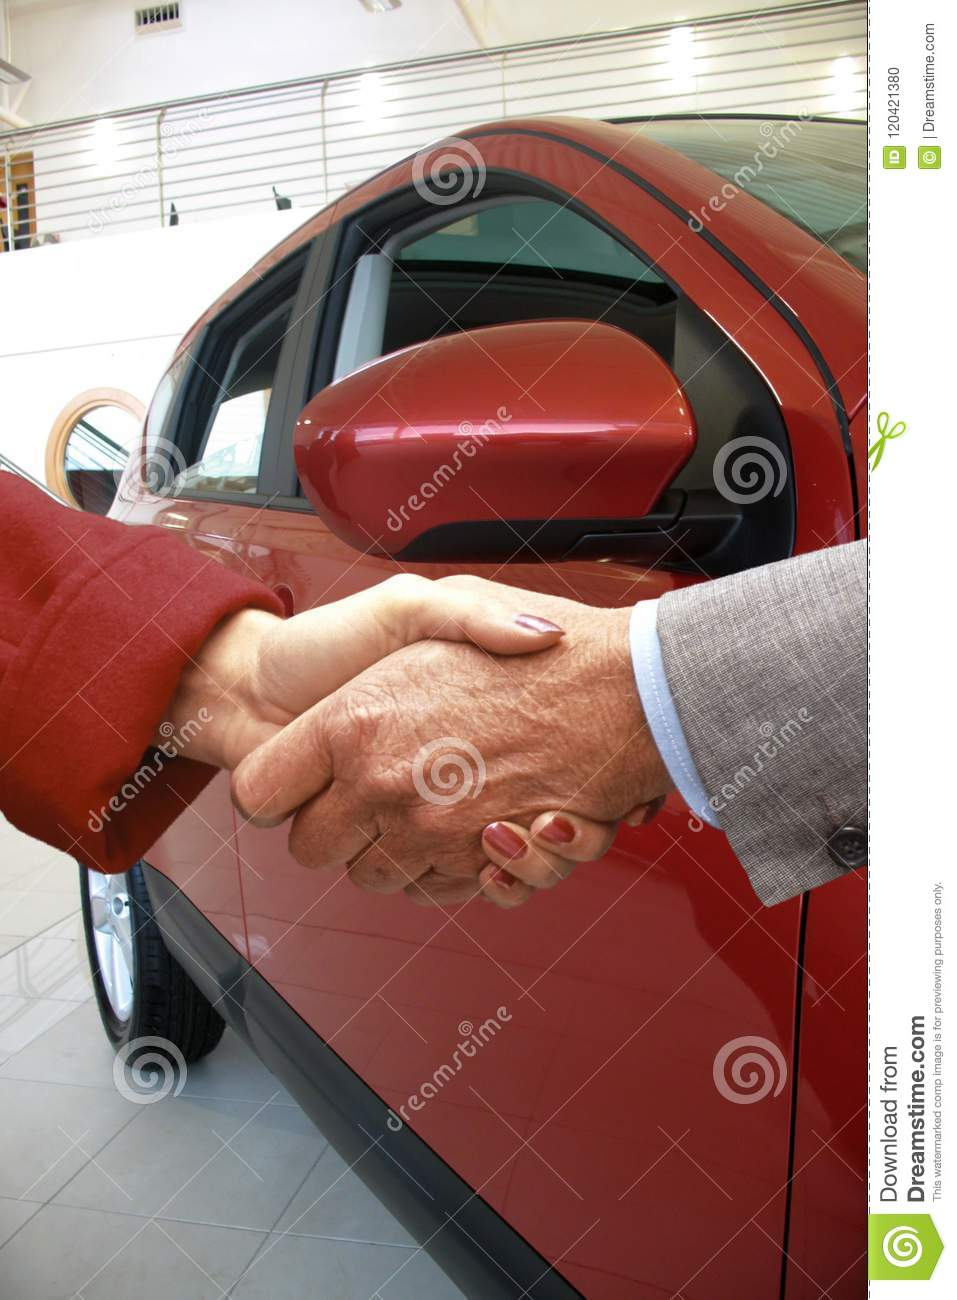 A Done Deal Hand Shake Stock Photo Image Of Handshake 120421380